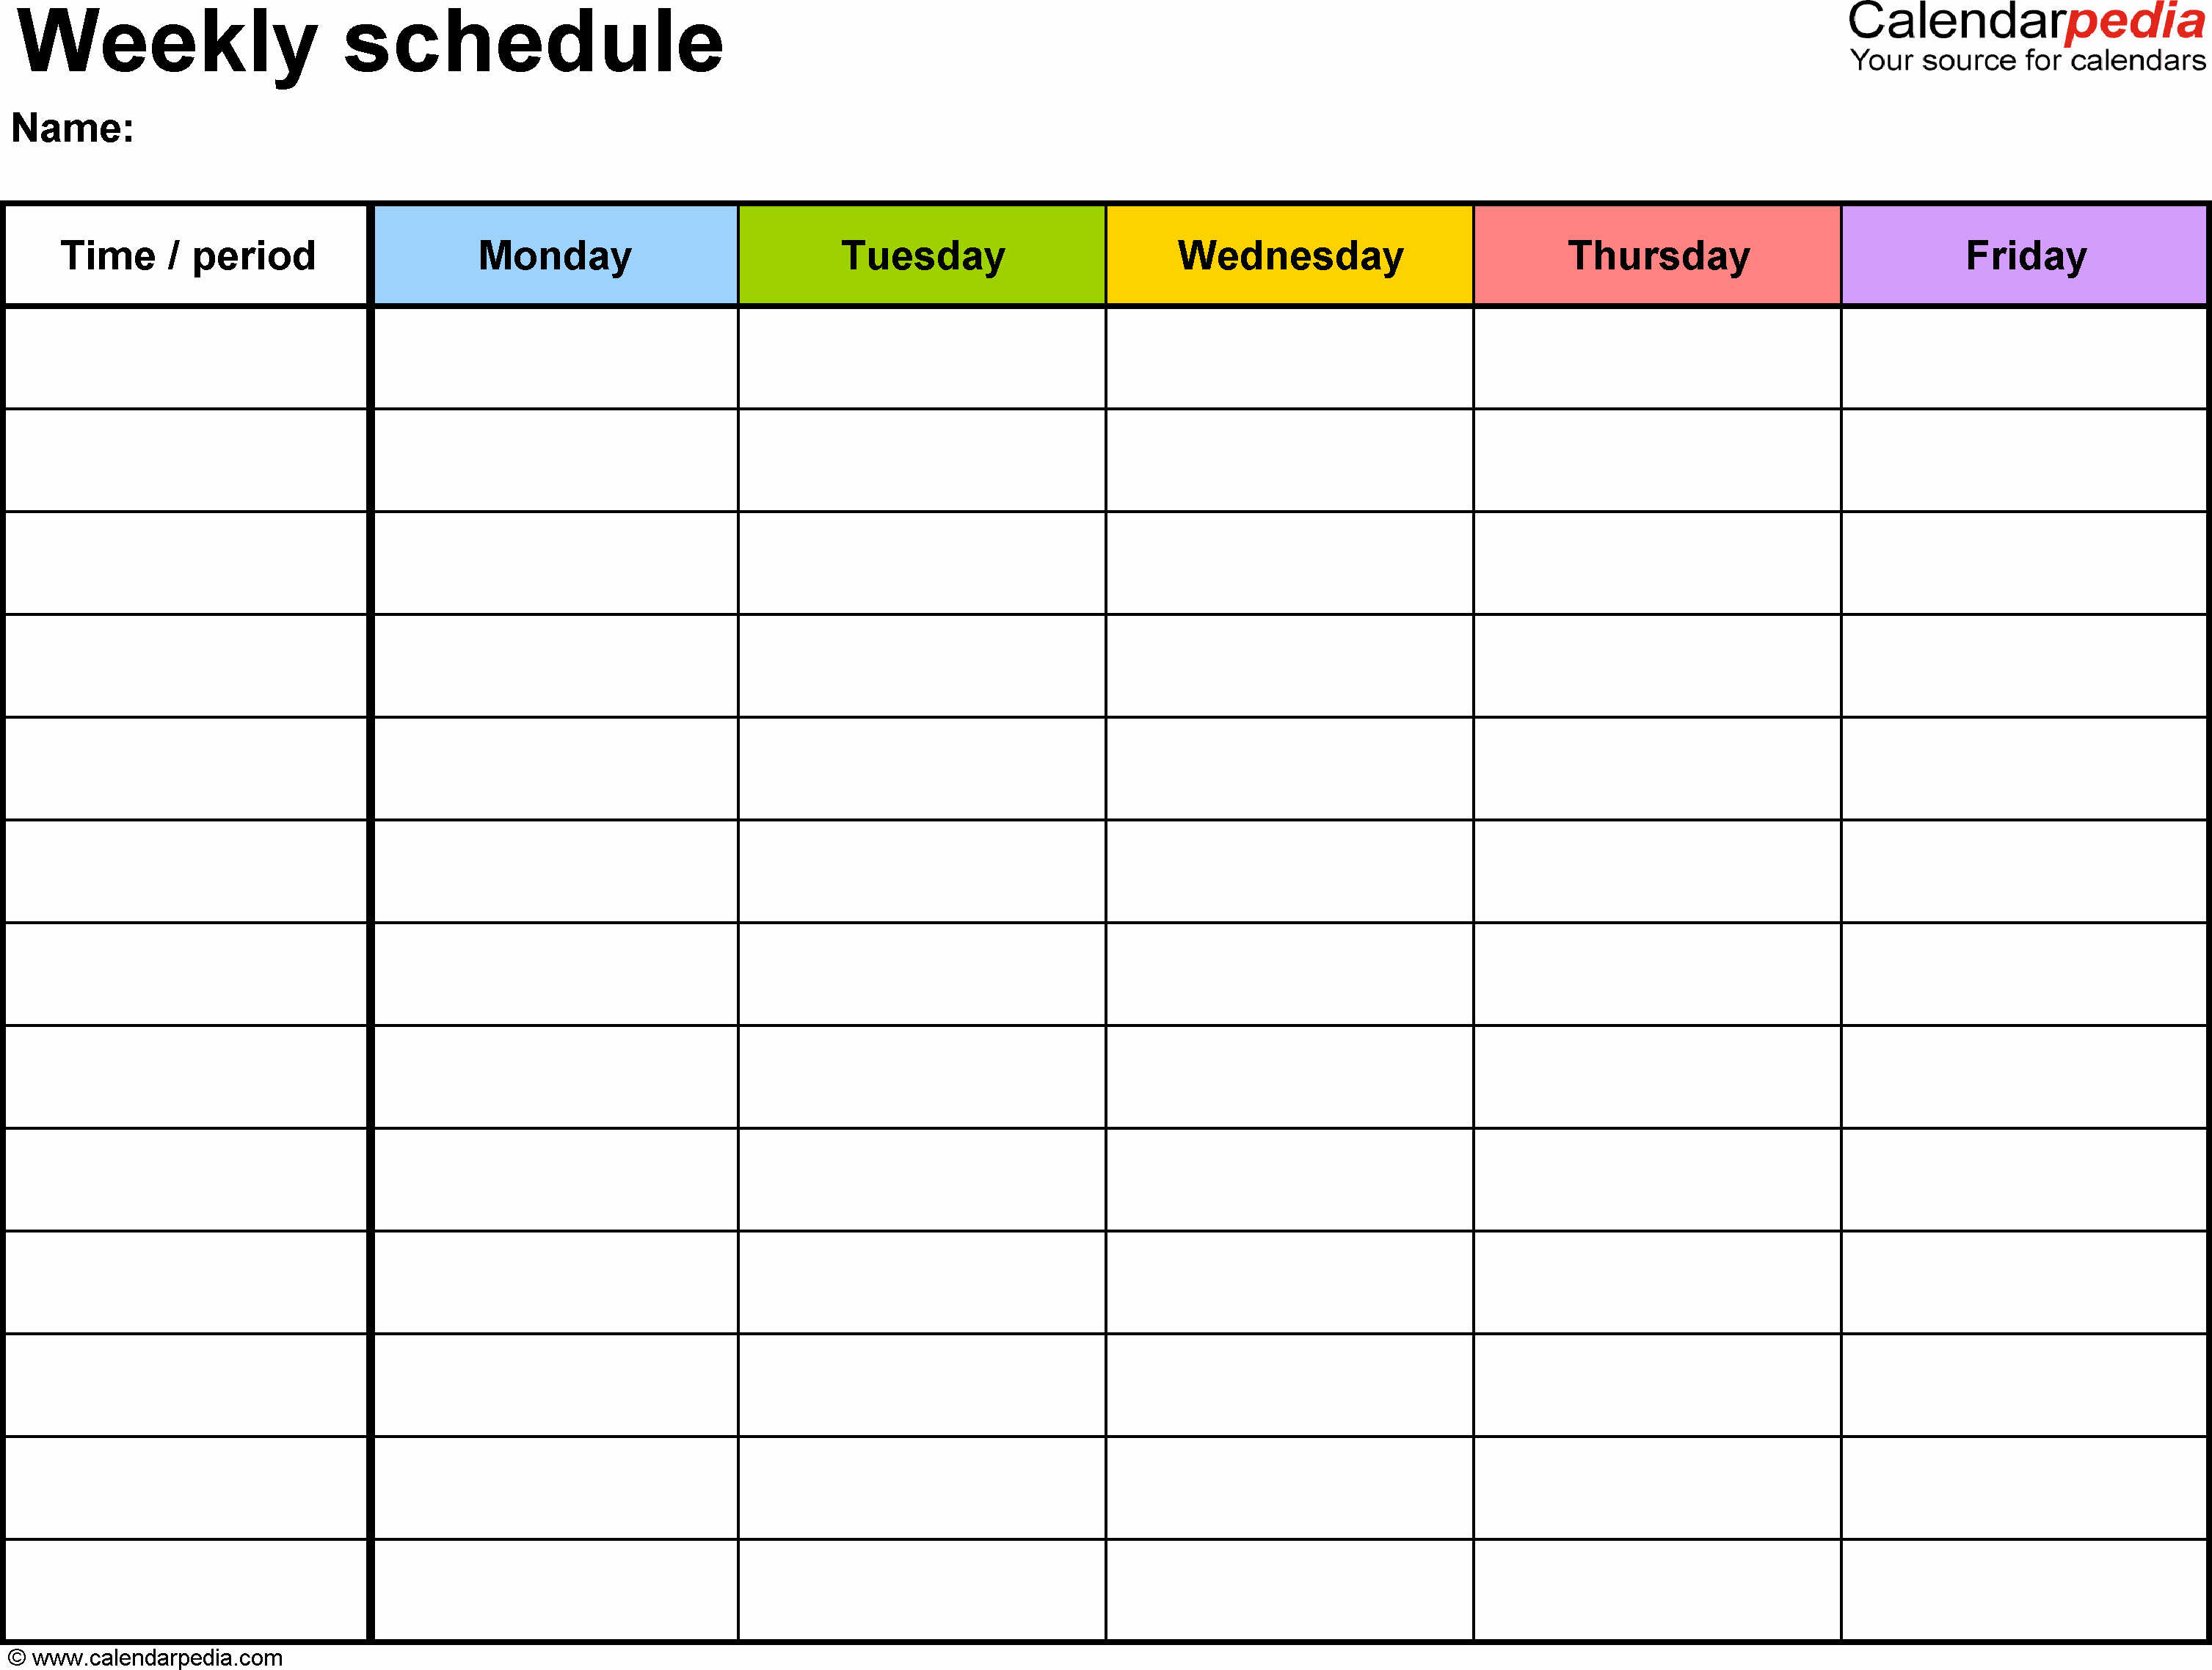 Template for Weekly Schedule Elegant Weekly Schedule Template for Word Version 1 Landscape 1